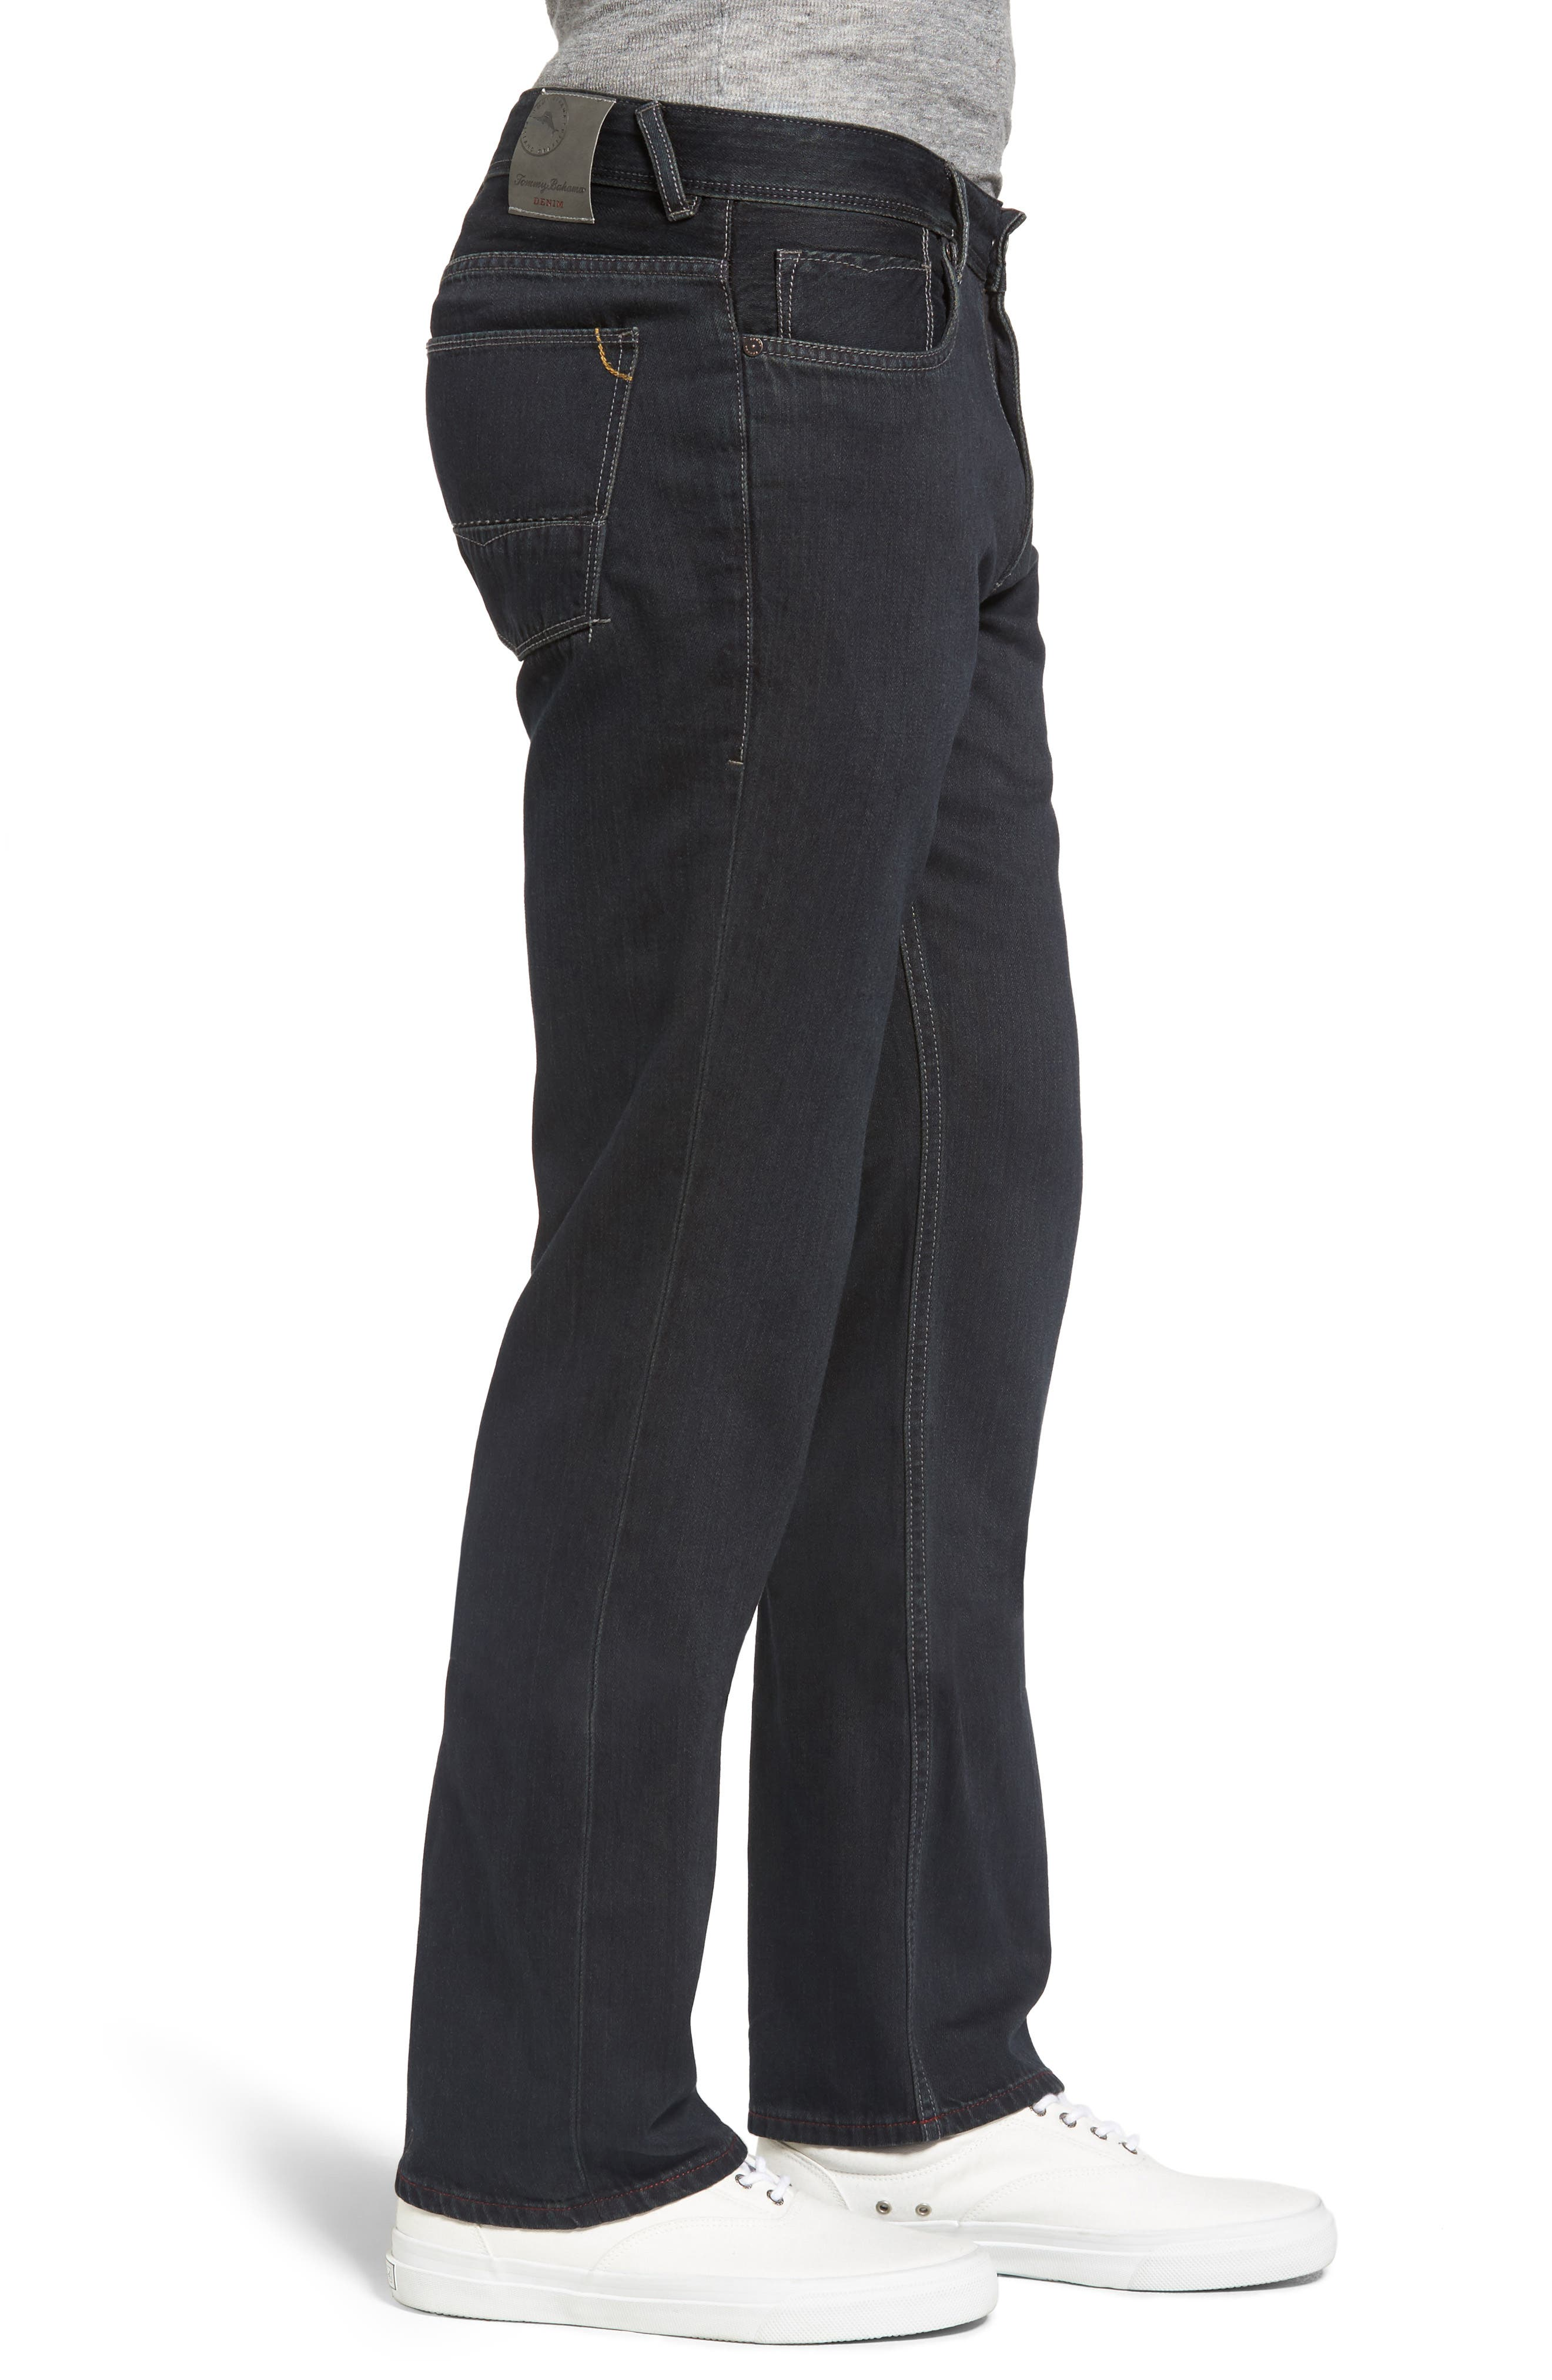 Cayman Island Relaxed Fit Straight Leg Jeans,                             Alternate thumbnail 3, color,                             Black Overdye